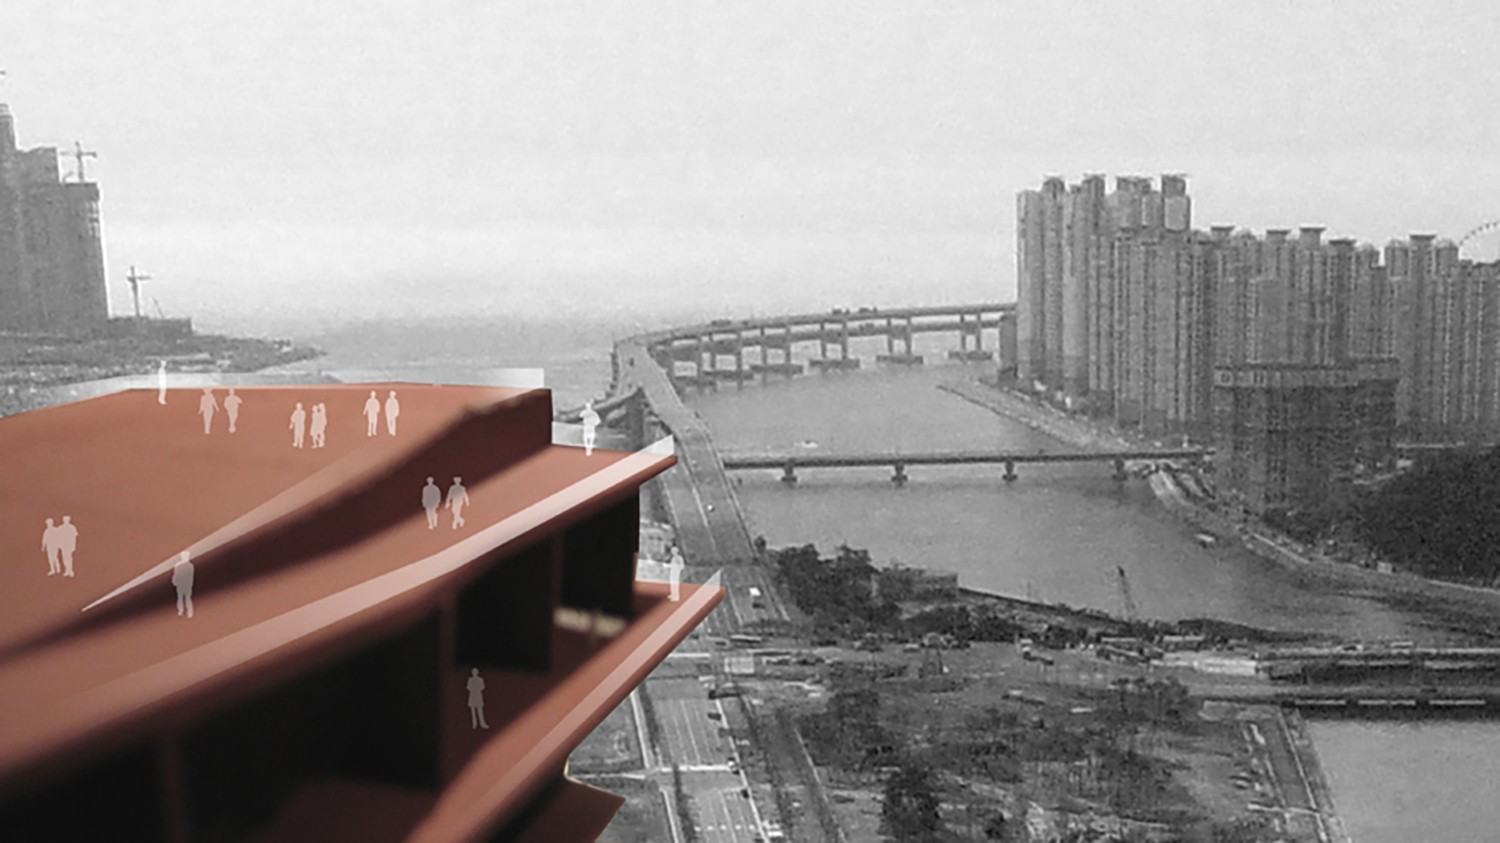 https://s3.us-east-2.amazonaws.com/steven-holl/uploads/projects/project-images/StevenHollArchitects_Busan_RoofView_WH.jpg